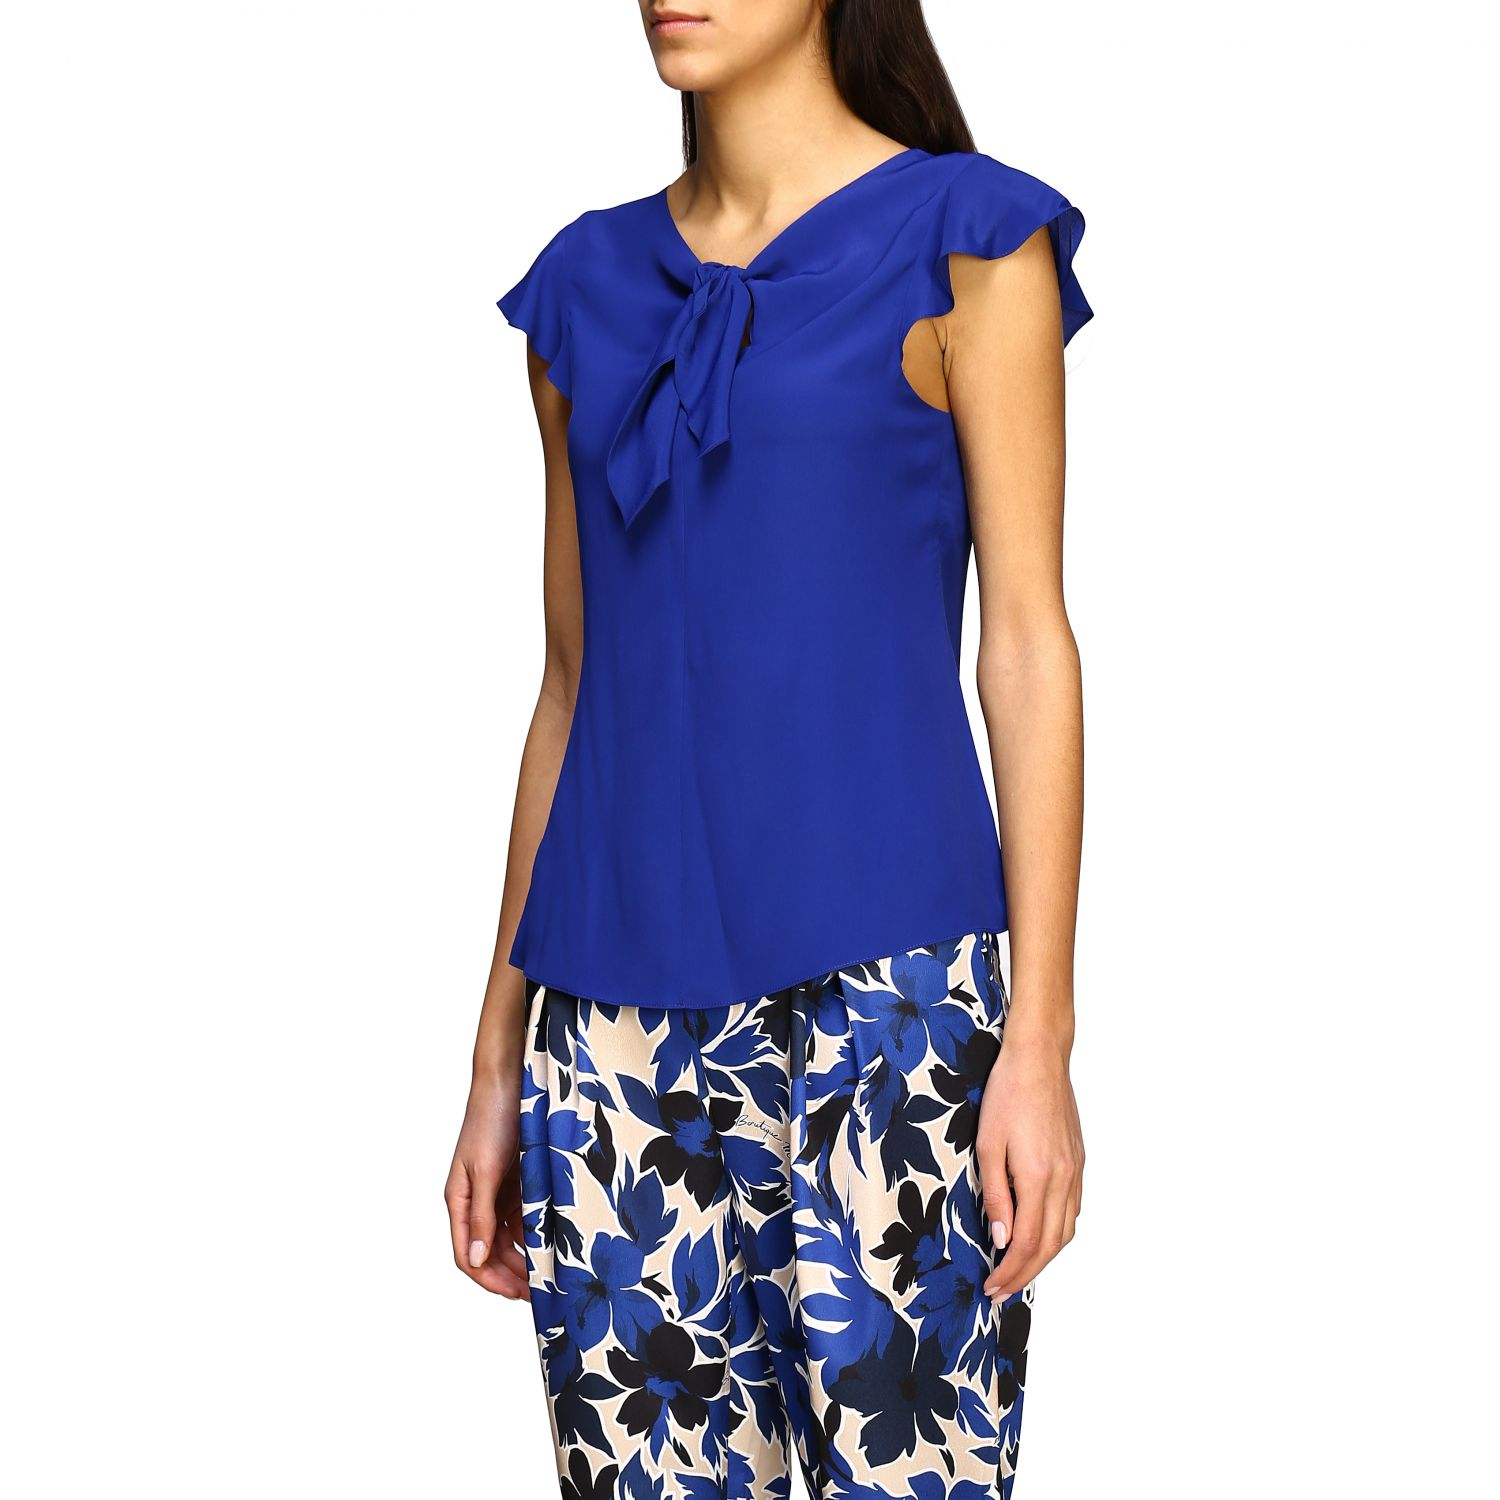 Top Boutique Moschino: Top women Boutique Moschino blue 4